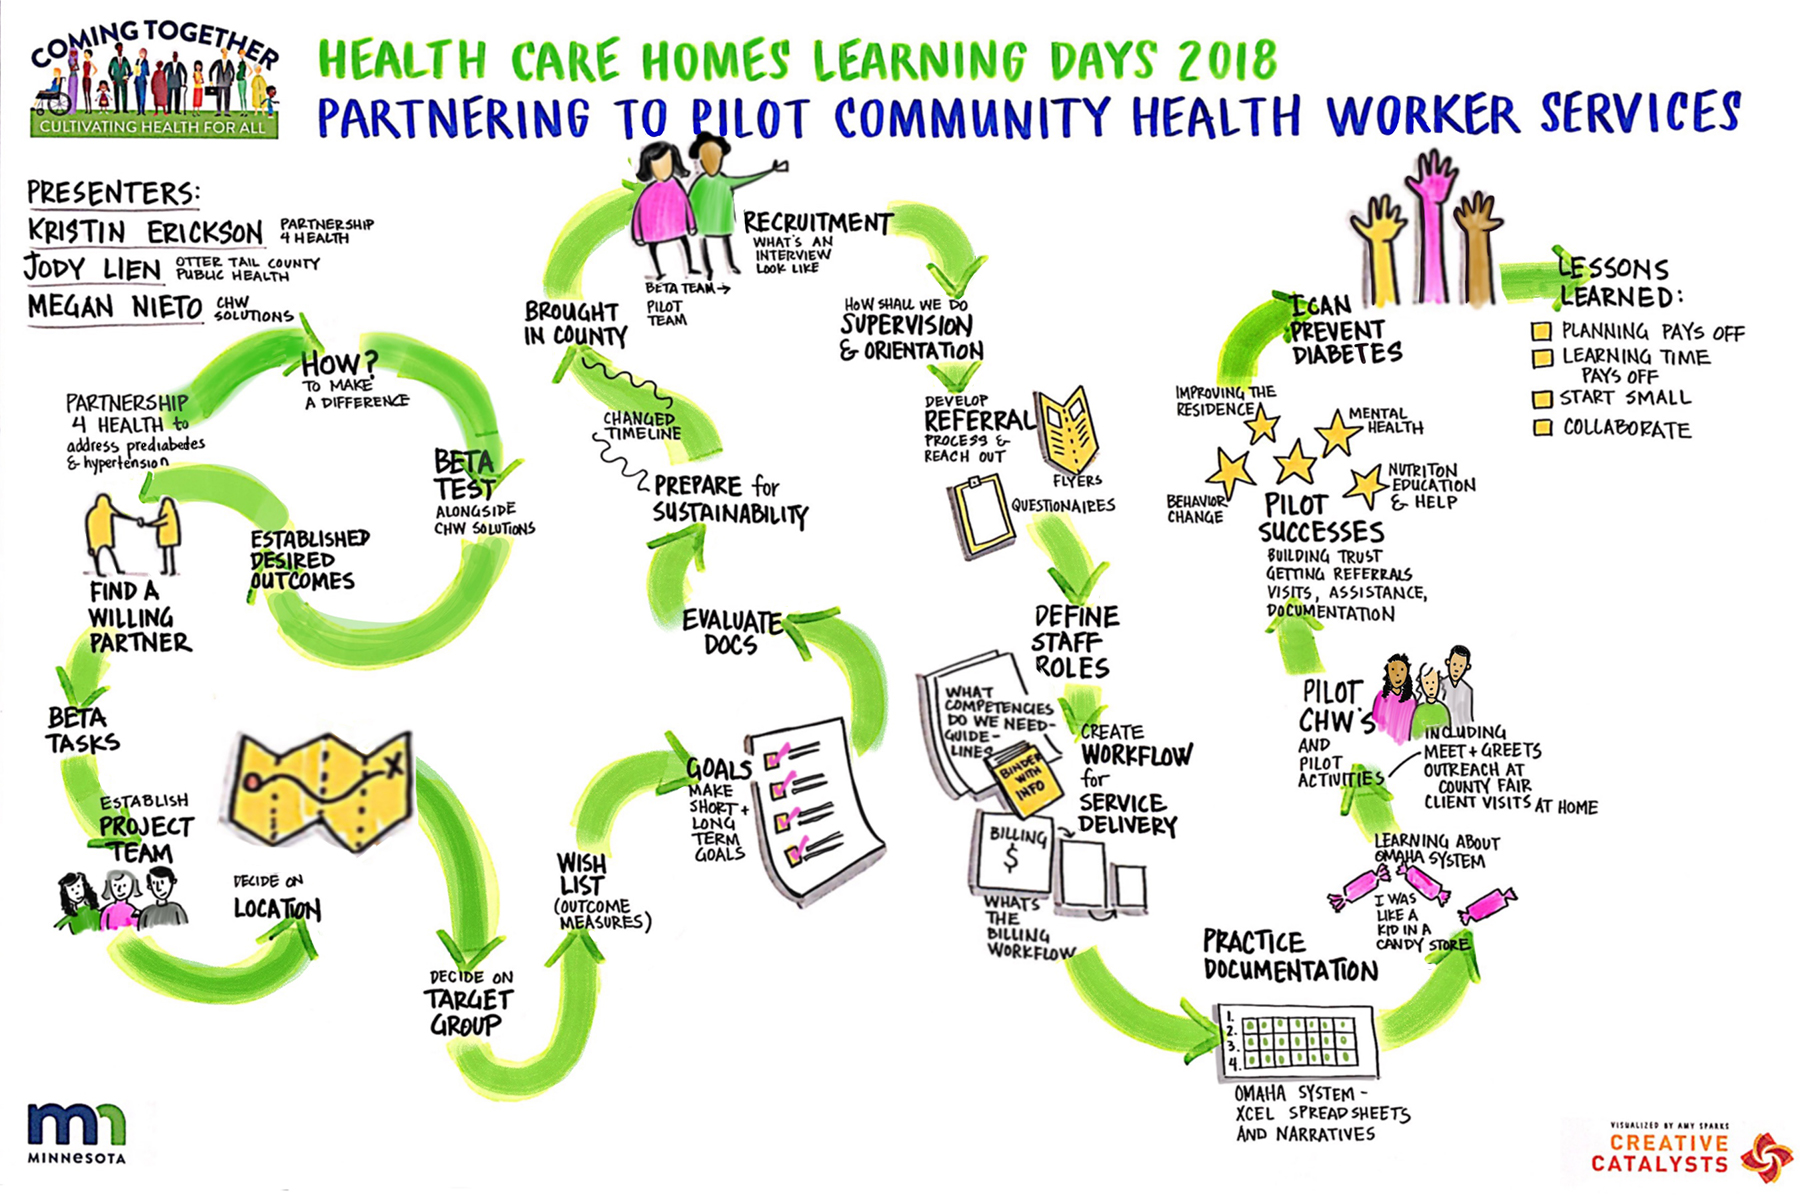 Partnering to Pilot Community Health Workers copy.jpg